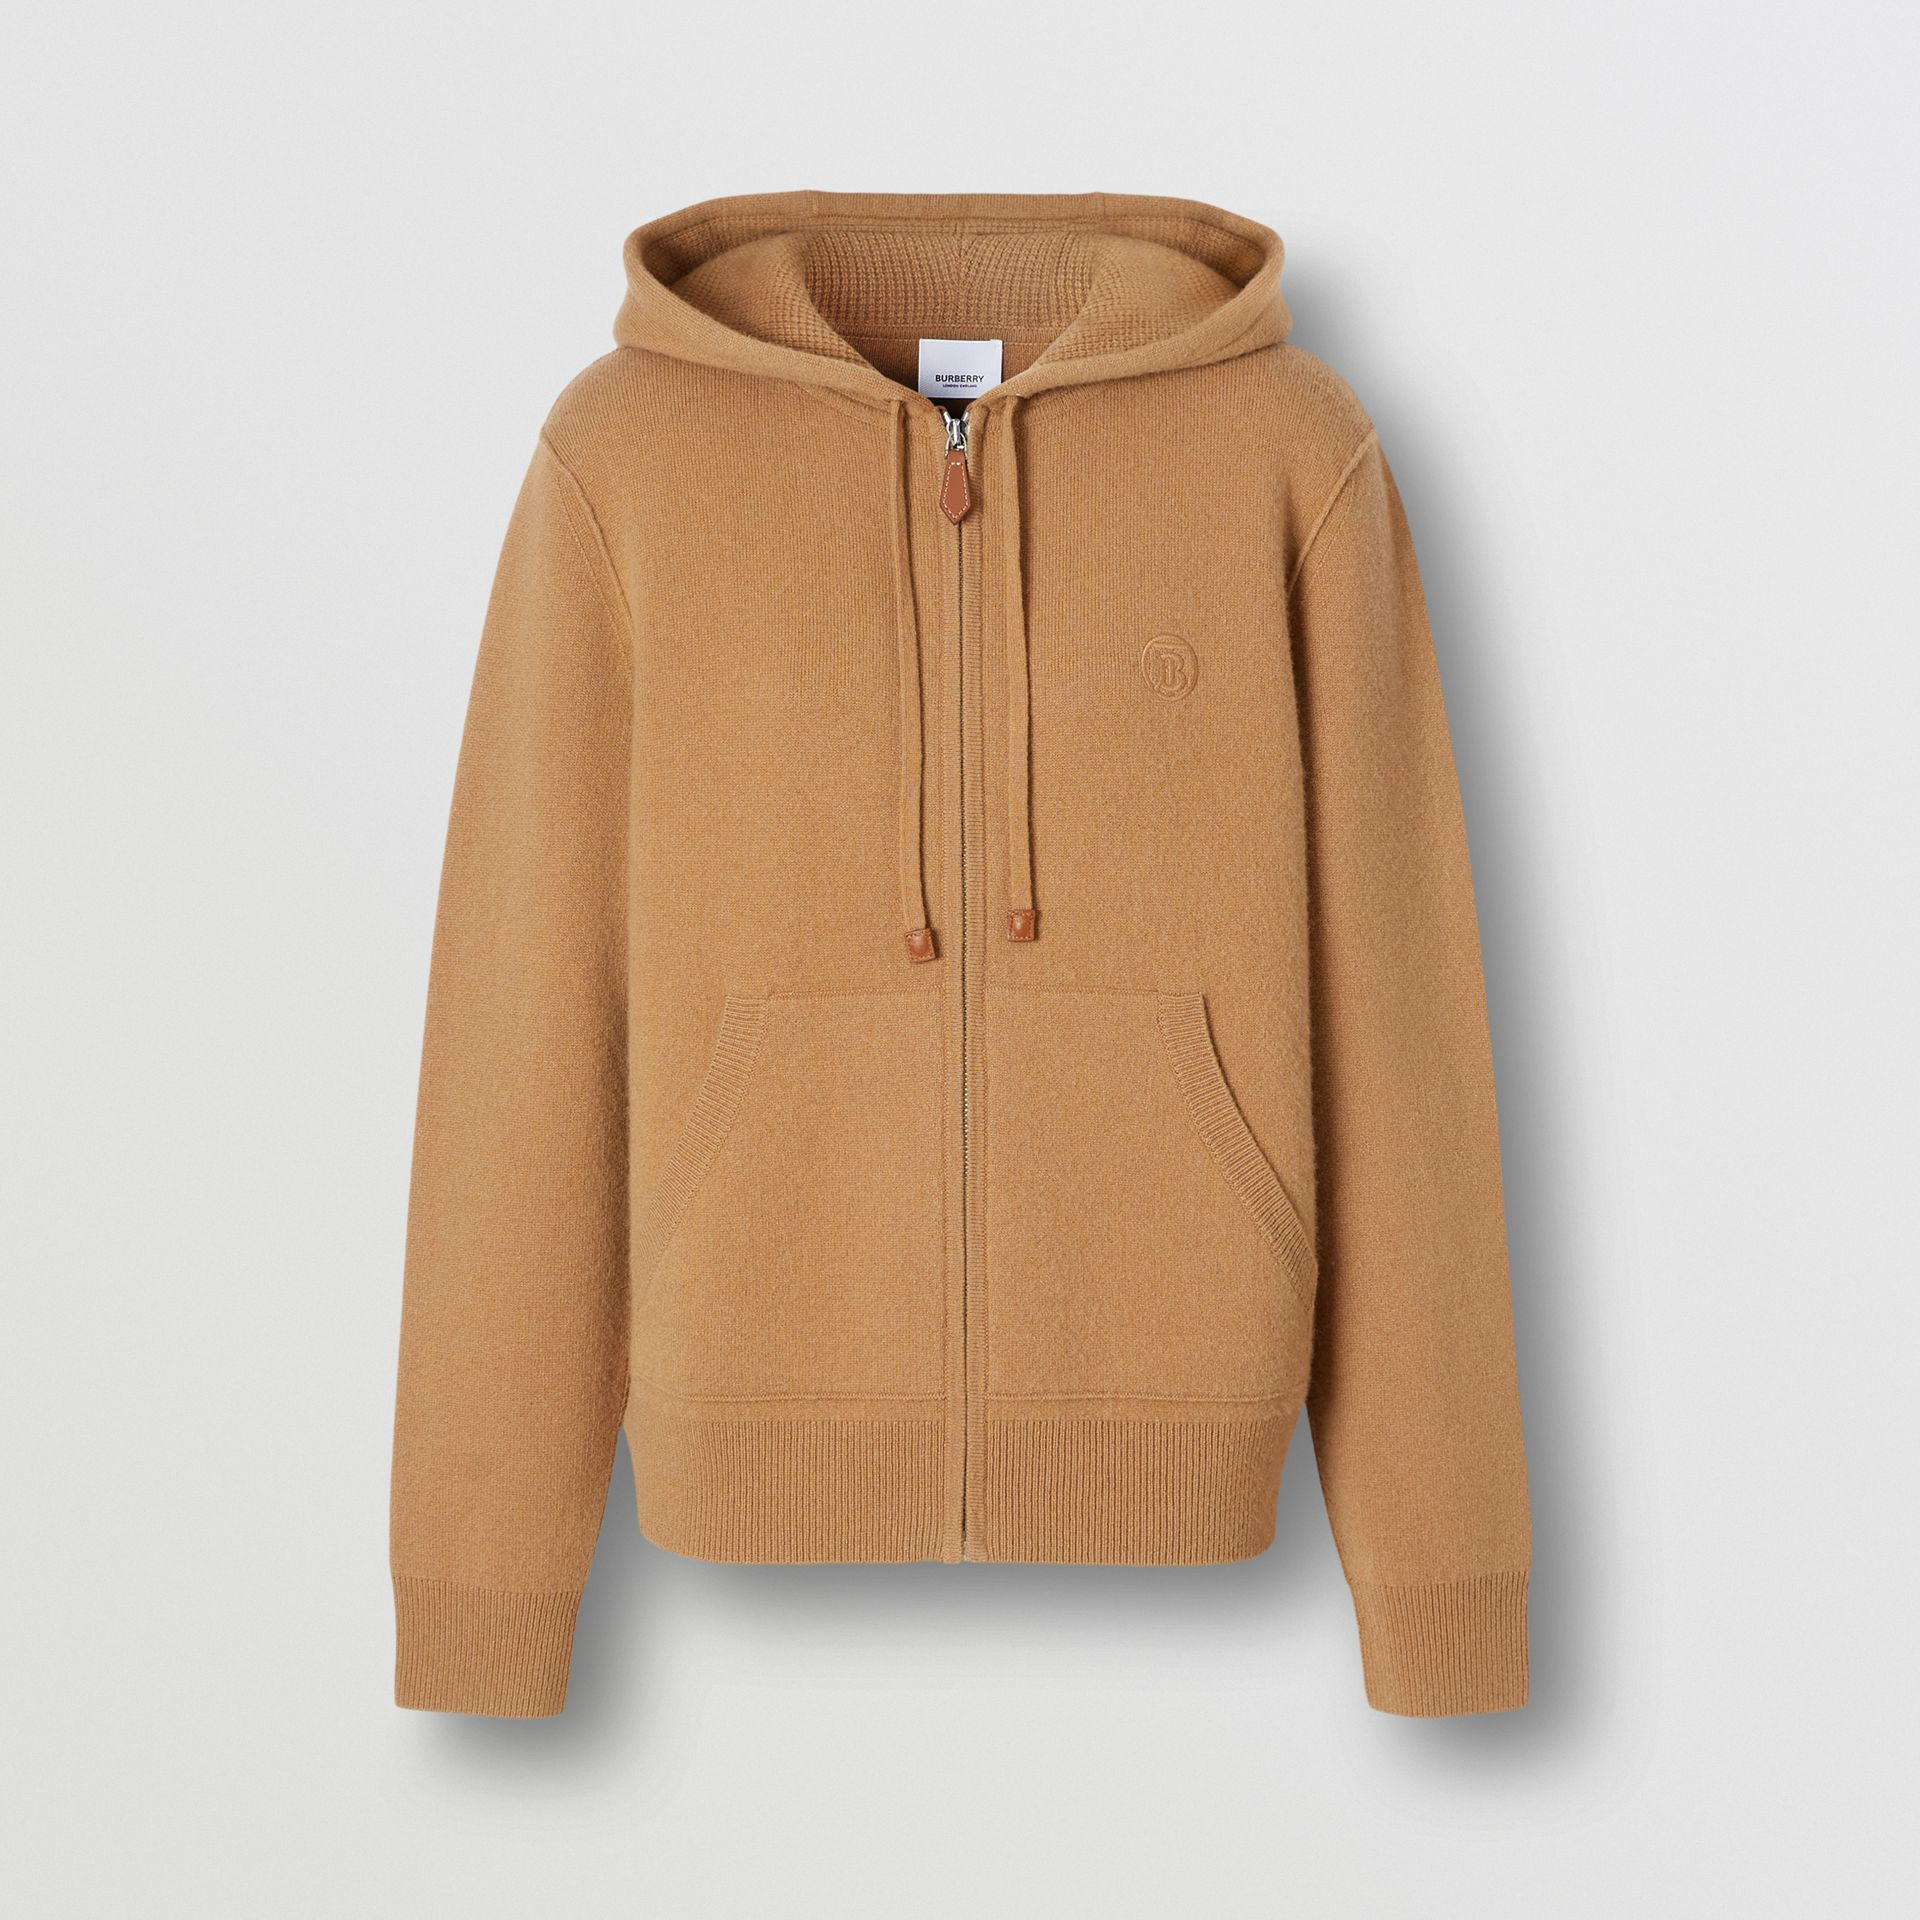 Monogram Motif Cashmere Blend Hooded Top in Camel - Women | Burberry - gallery image 3